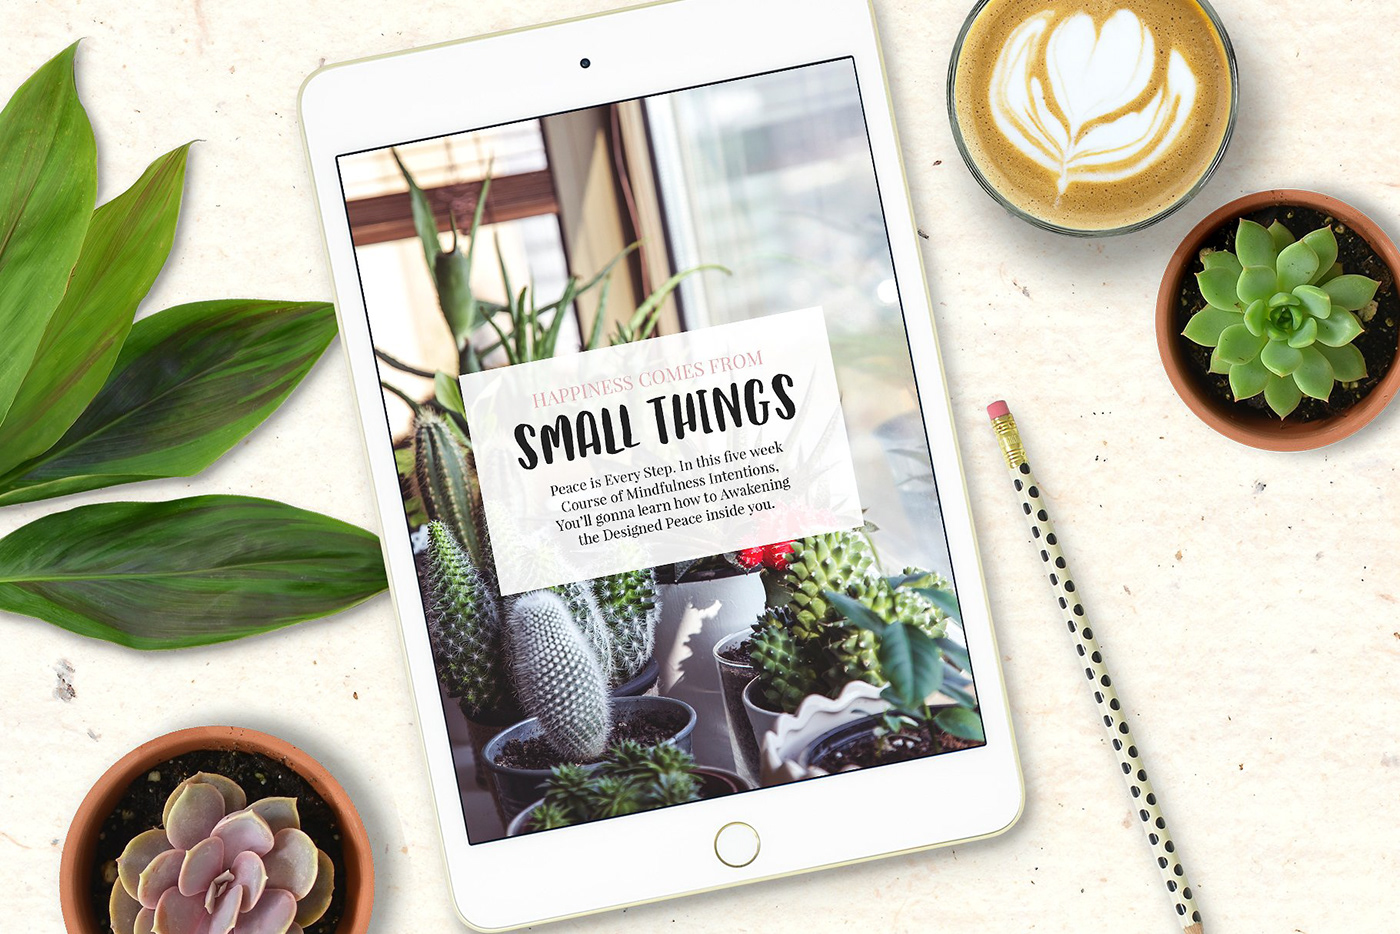 Catch Feels - Lovely and Quirky font FREE DOWNLOAD! on Behance